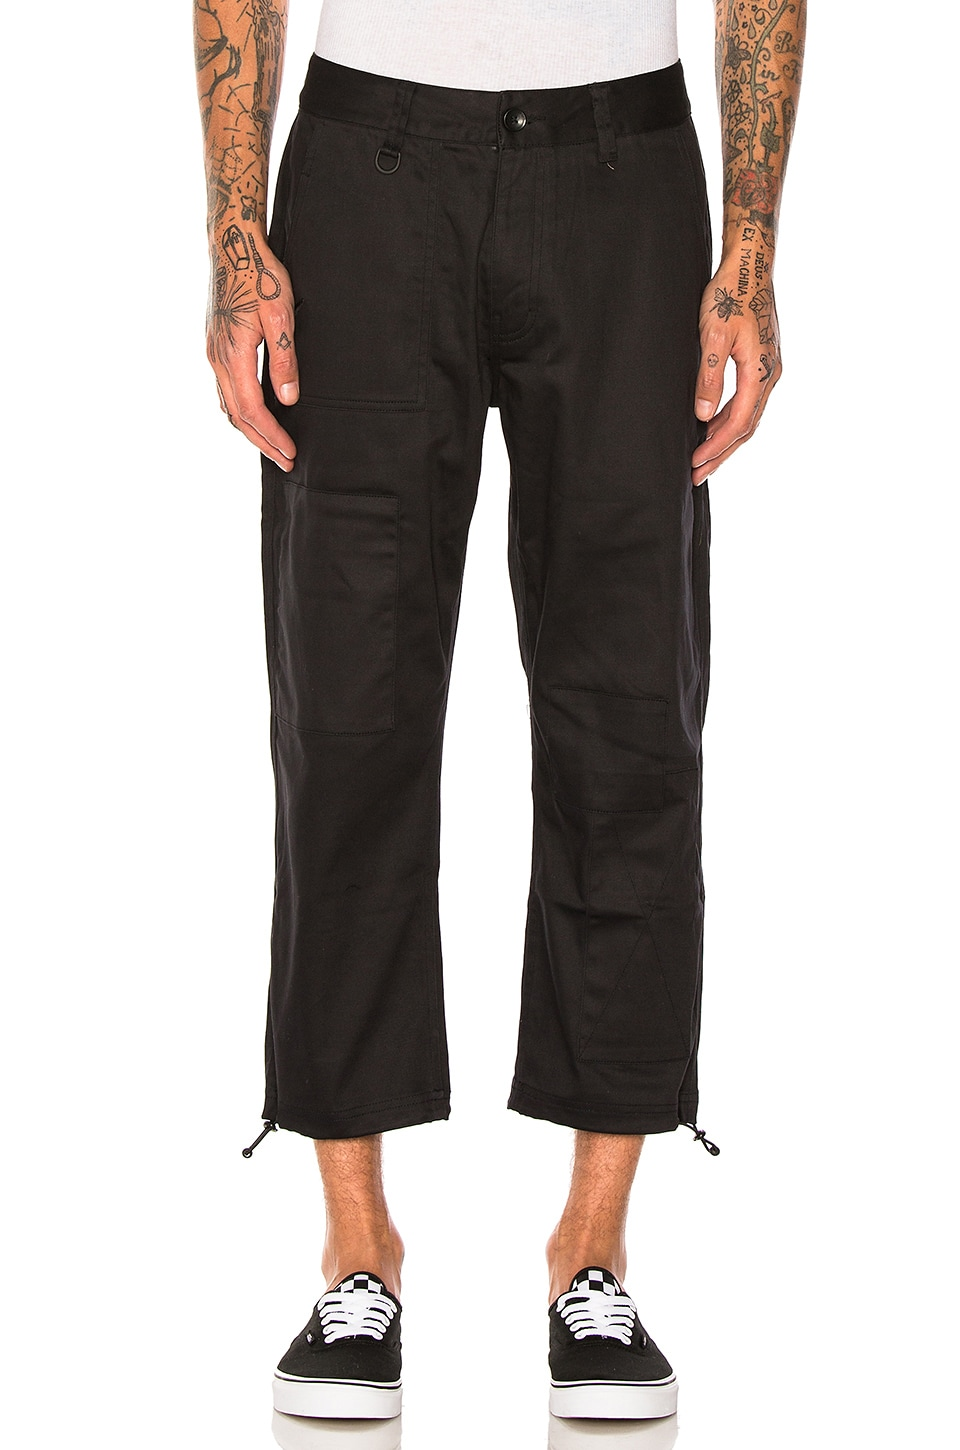 Kreston Pant by Publish